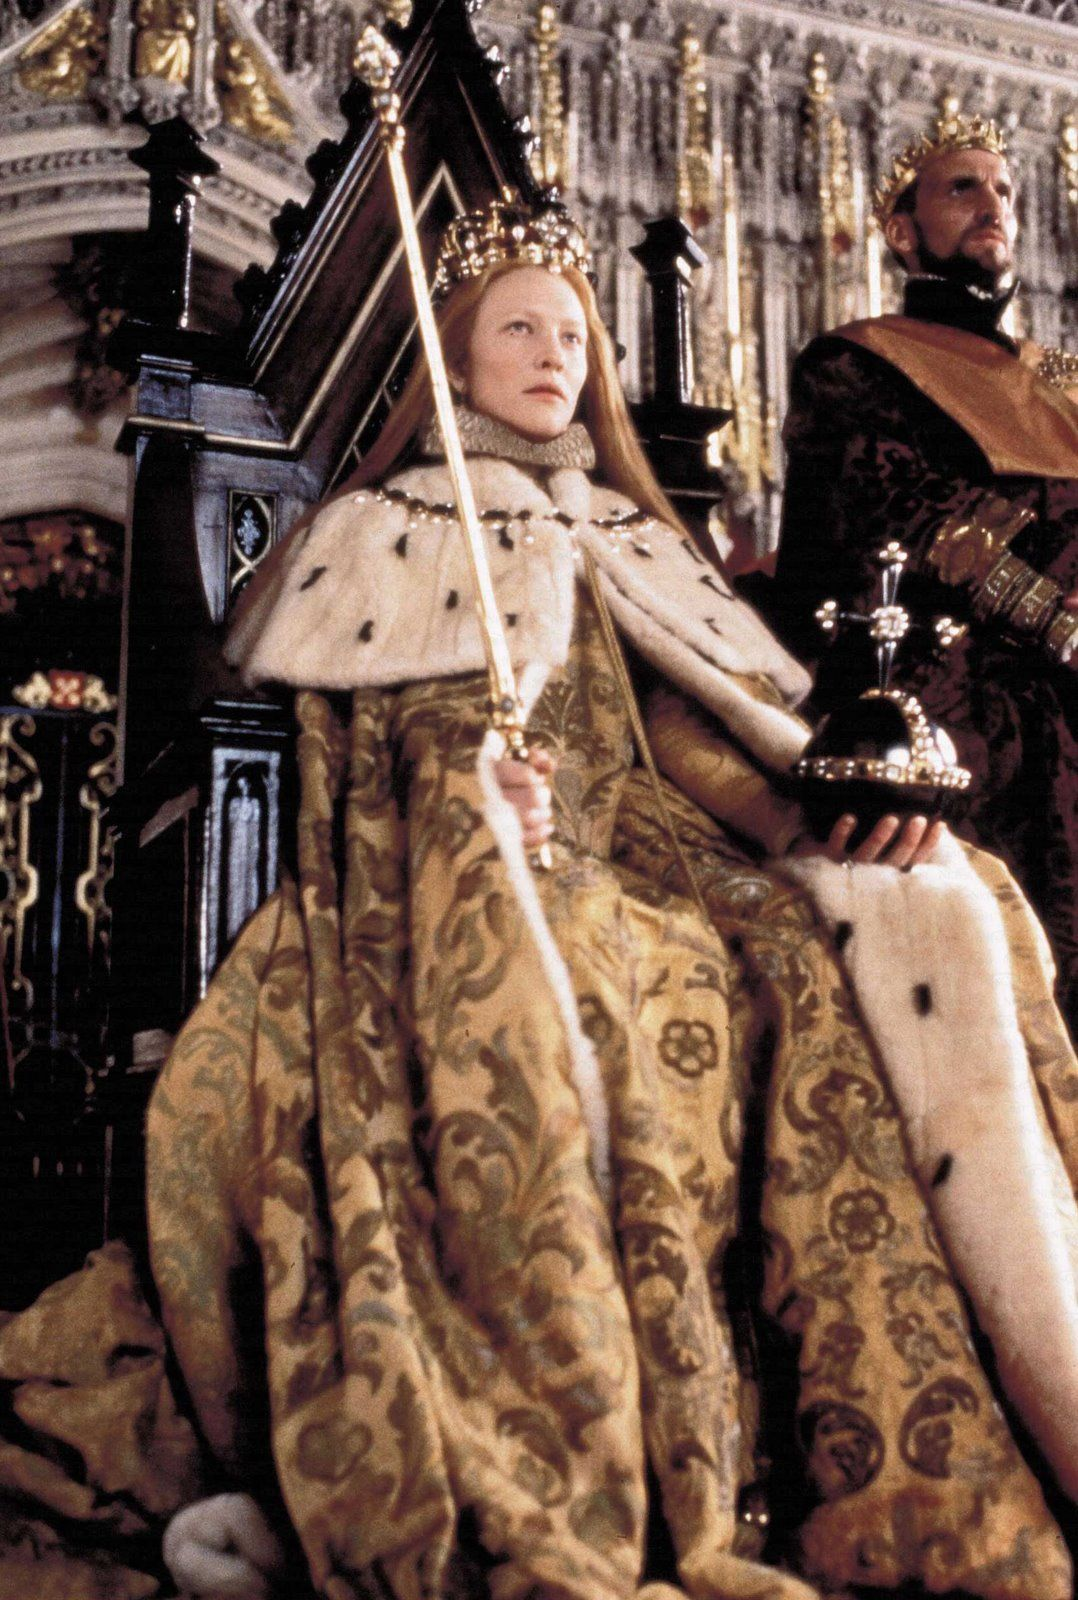 The costume worn by Cate Blanchett as Elizabeth I during